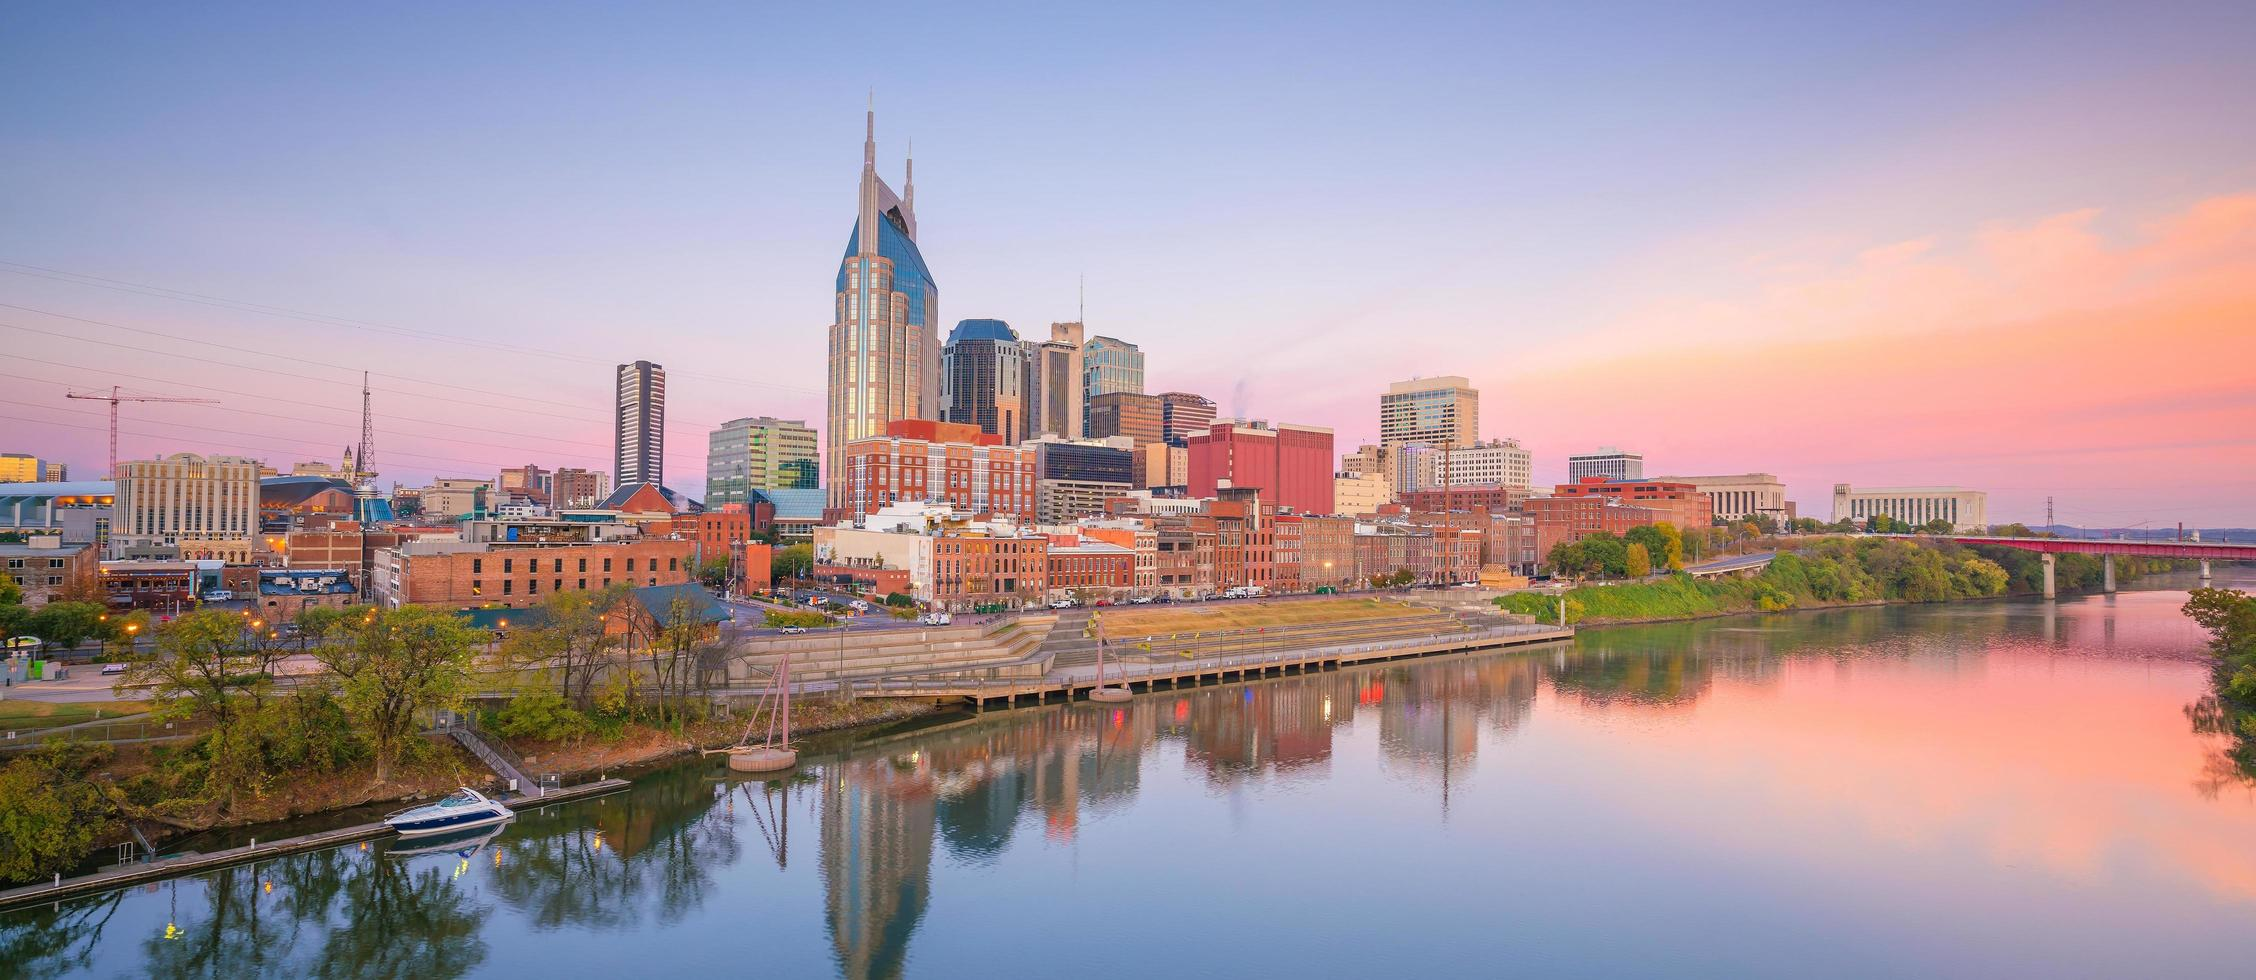 Downtown skyline of Cumberland River, Tennessee photo